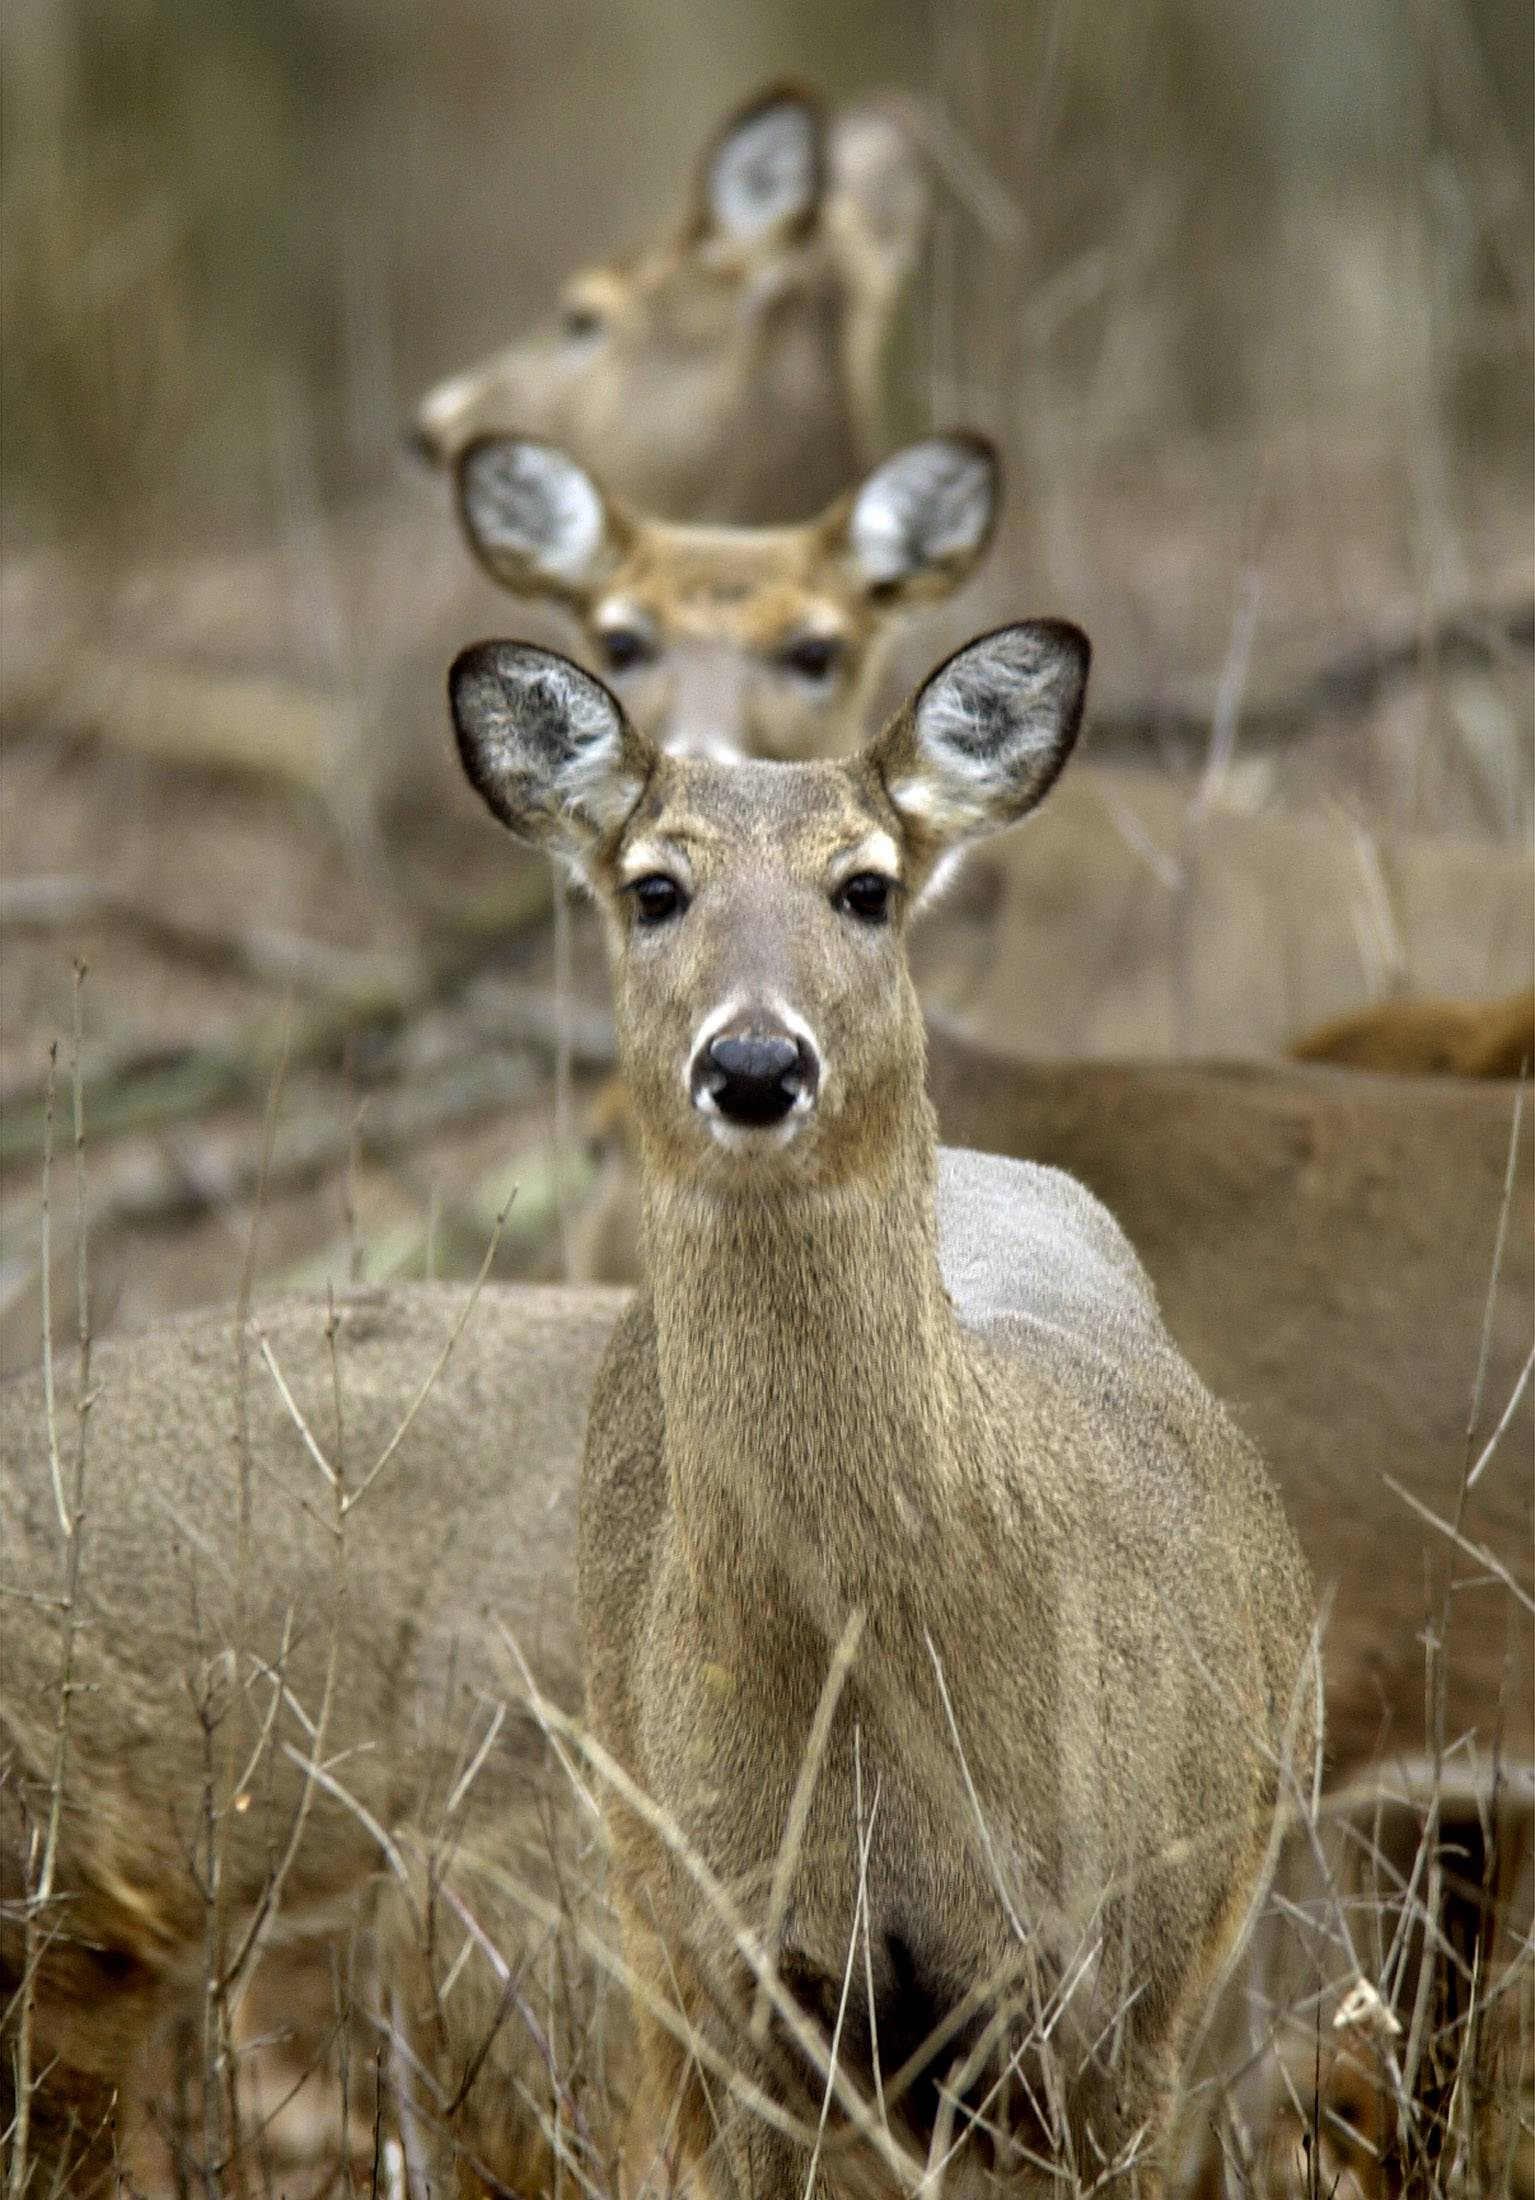 Chronic wasting disease attacks the brains of affected deer, causing them to become emaciated, display abnormal behavior, lose coordination and eventually die, according to the Illinois Department of Natural Resources.